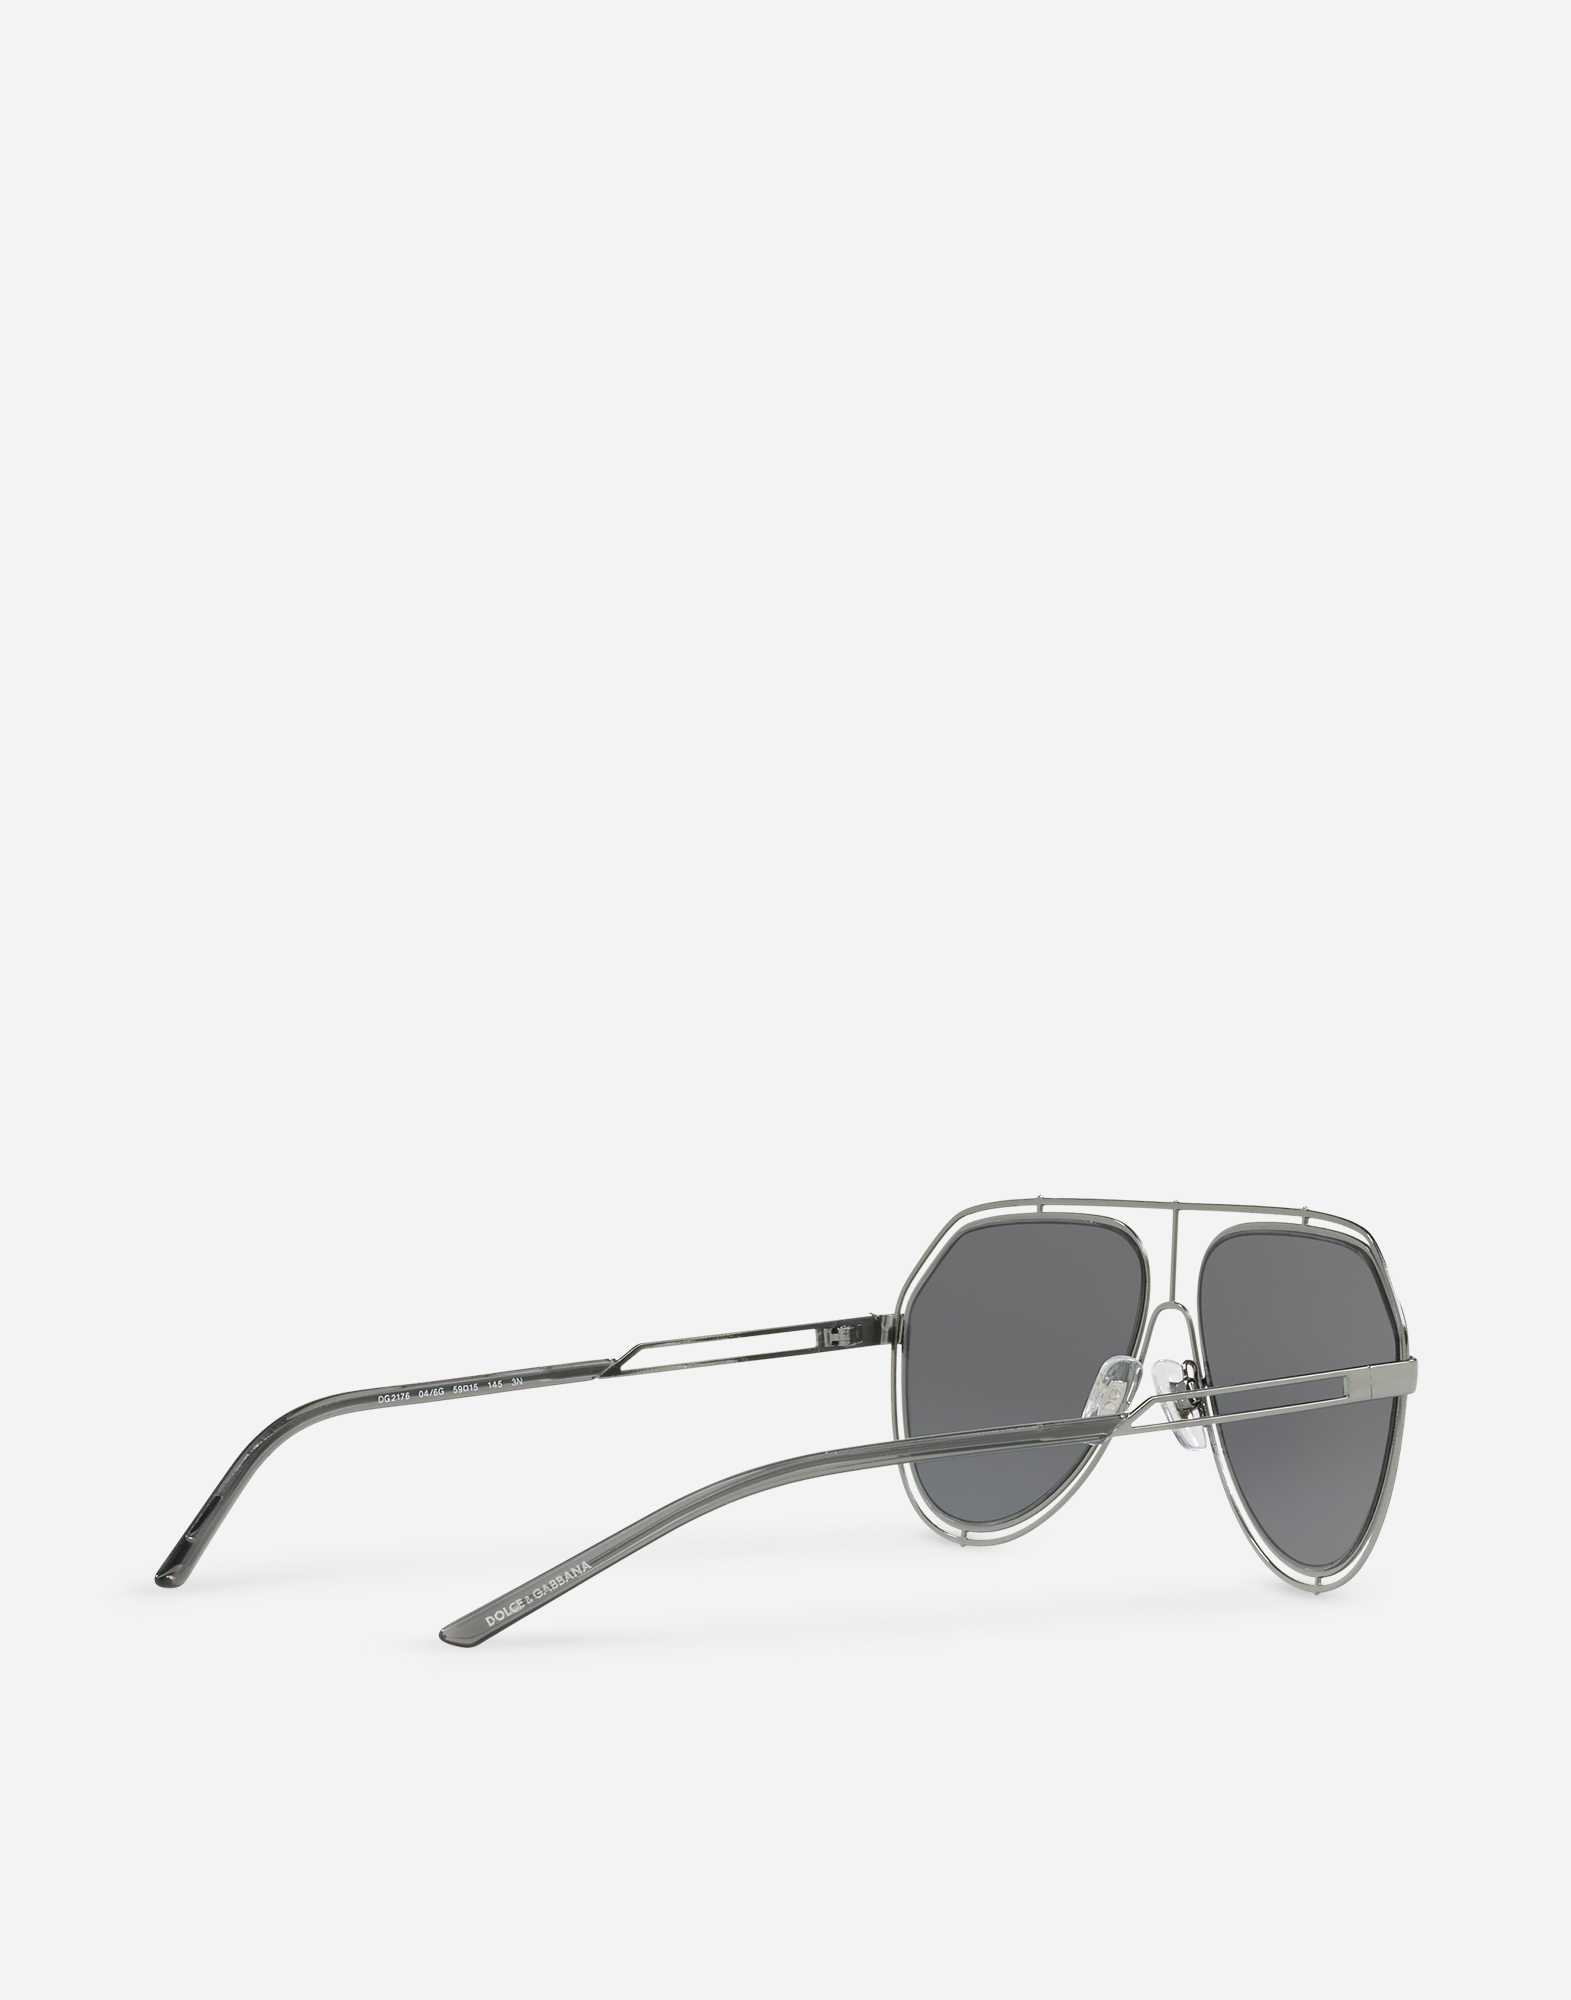 Dolce & Gabbana AVIATOR SUNGLASSES WITH METAL RIMS